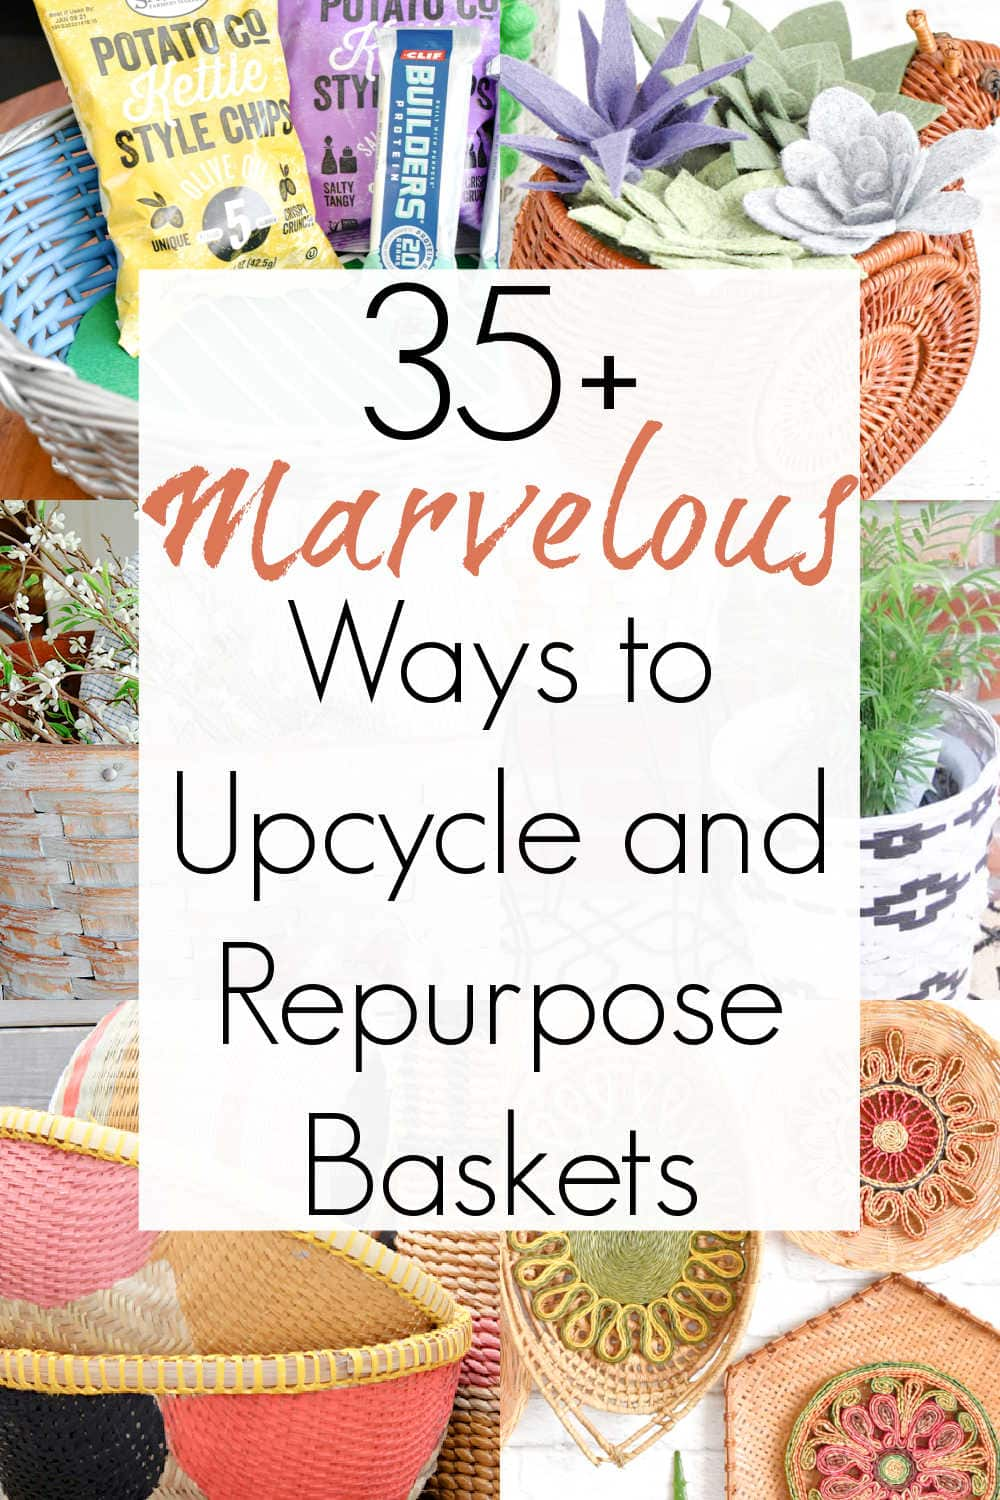 how to upcycle wicker baskets